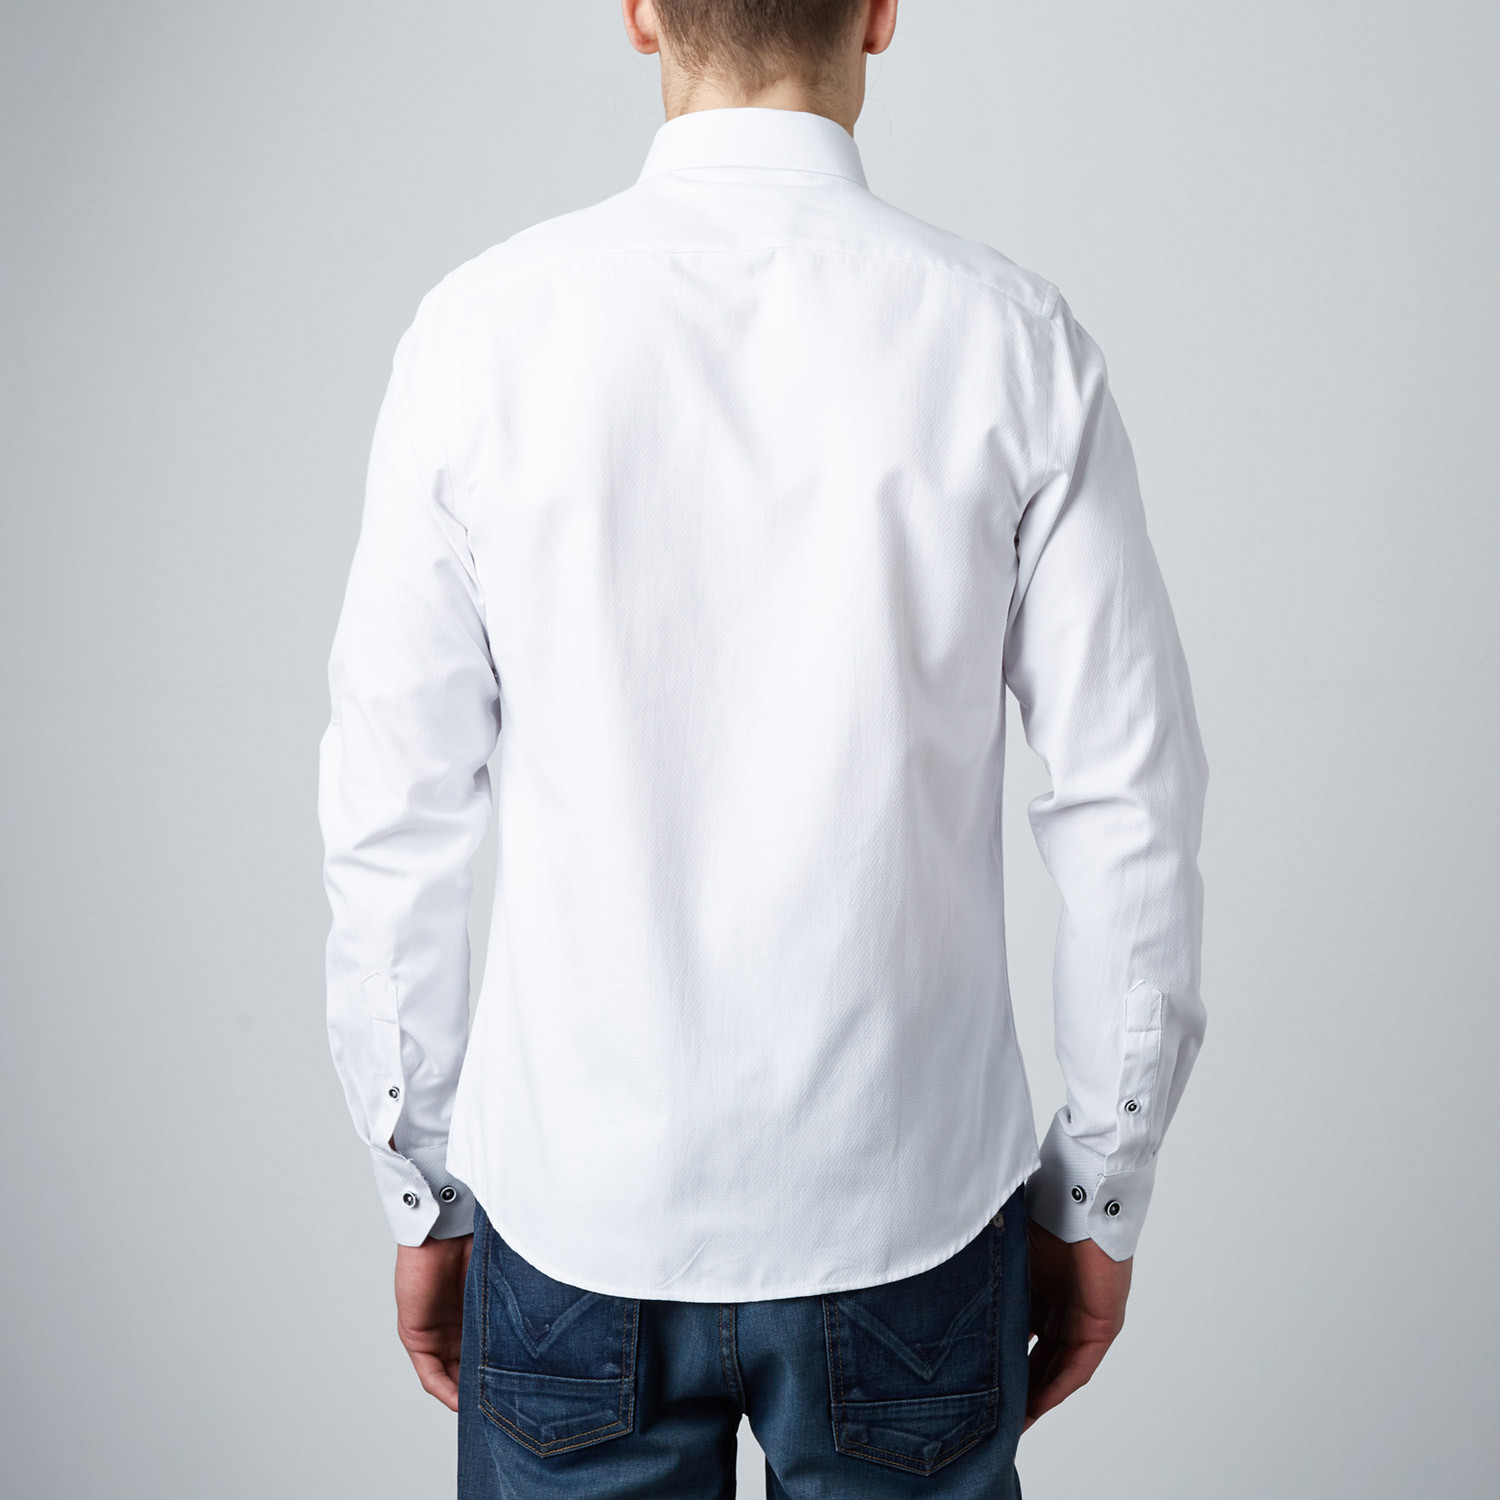 Scallop Texture Button Up Dress Shirt White S Rosso